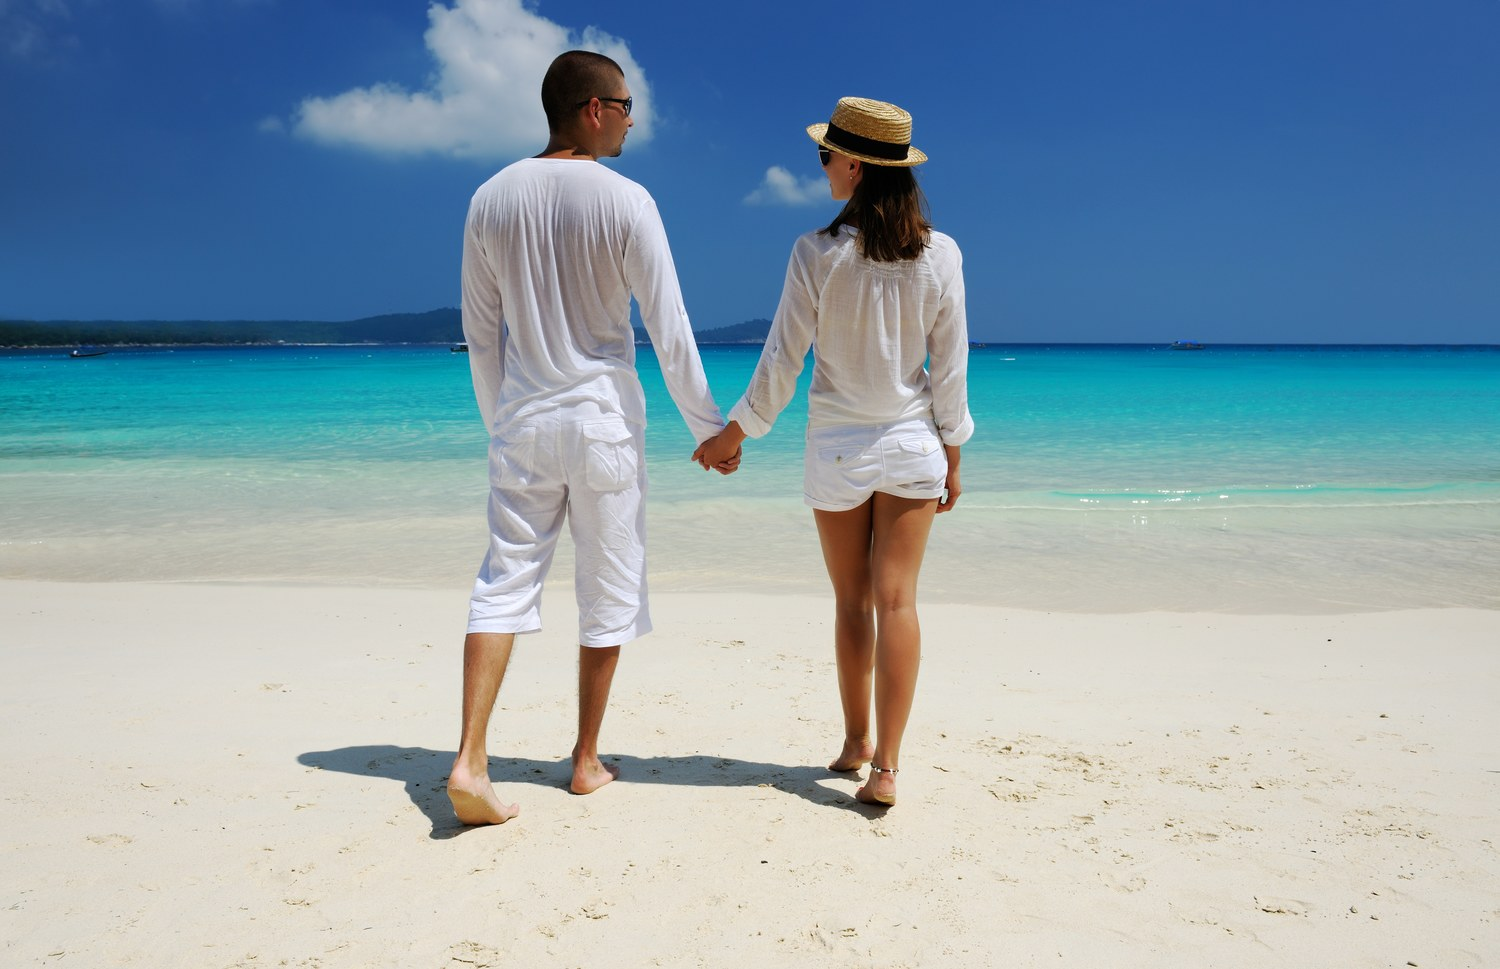 invite-to-paradise-holiday-honeymoon-sri-lanka-maldives-couple-beach-walk-1